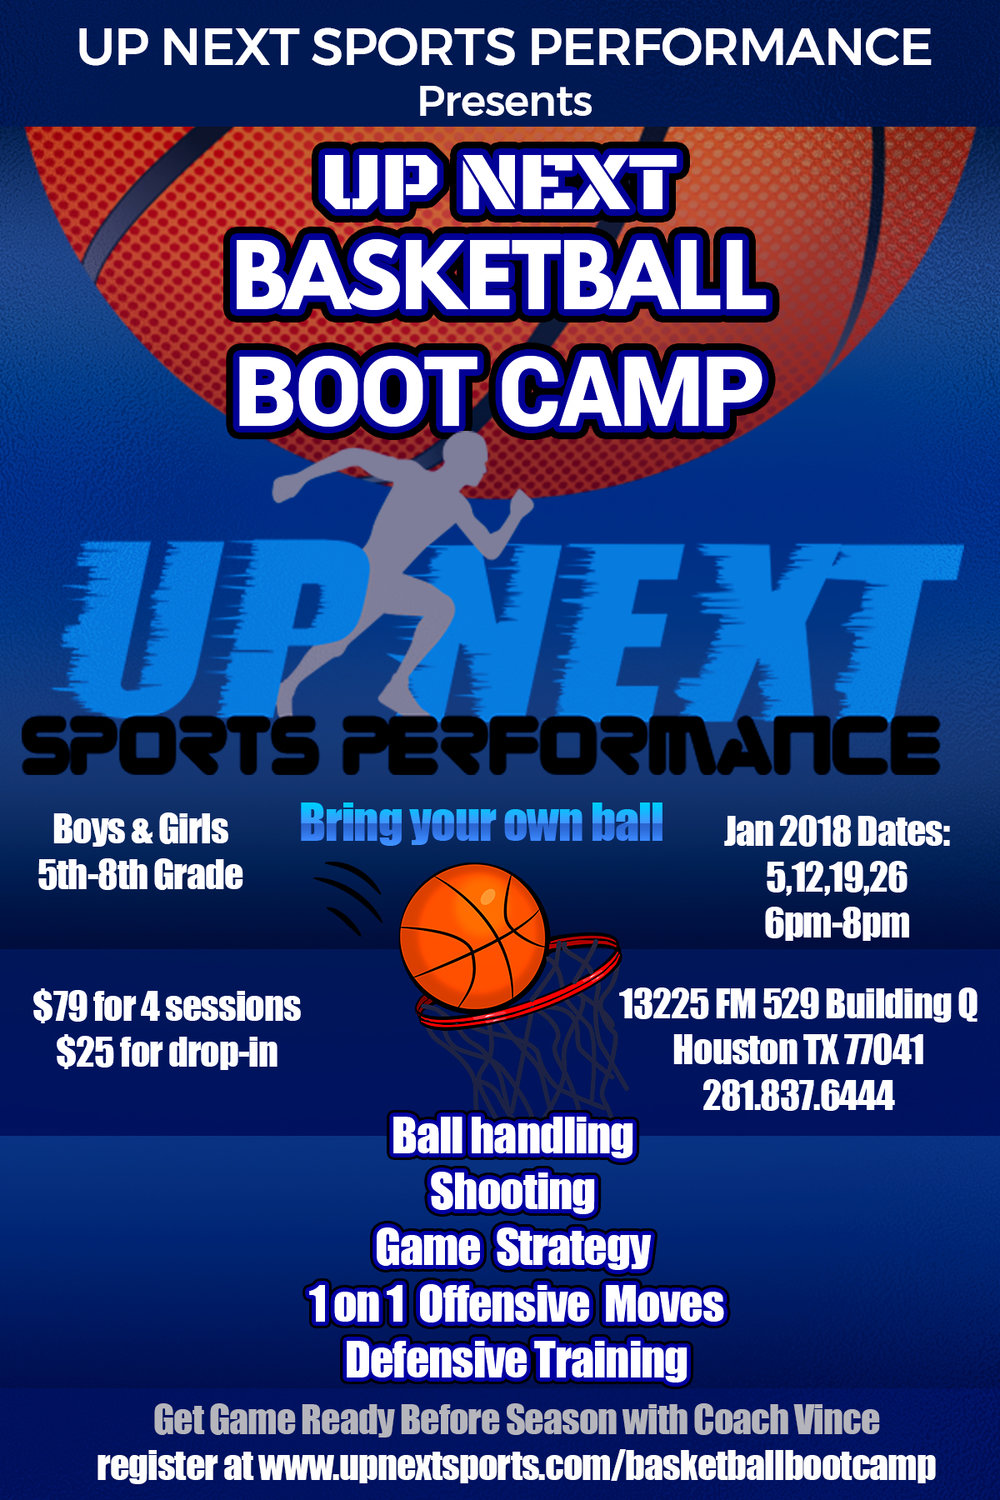 Up Next Basketball Boot Camp